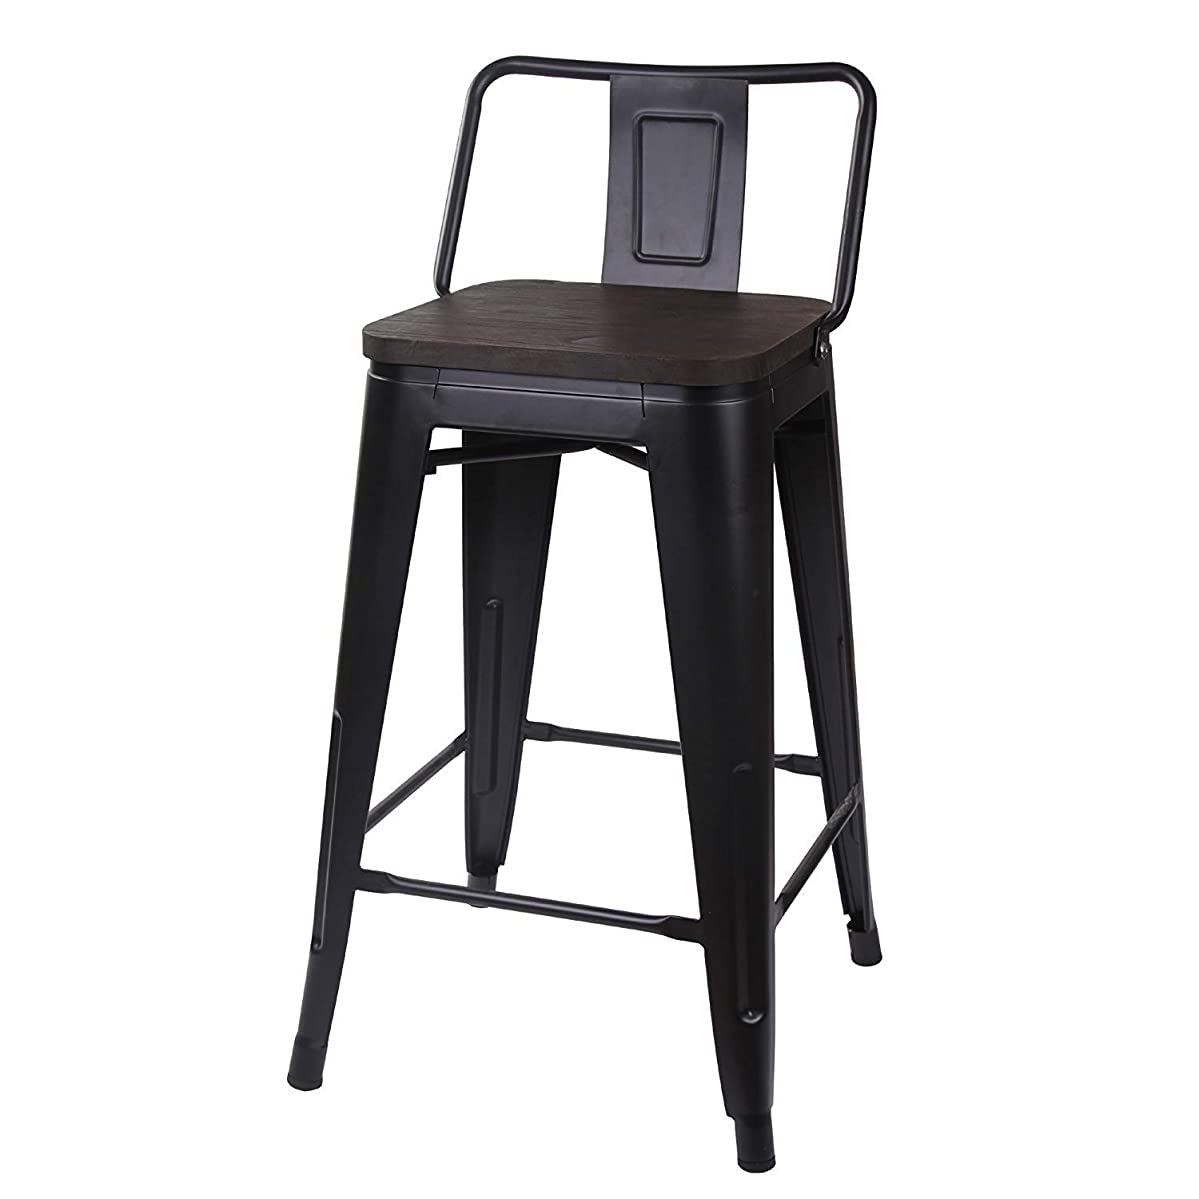 GIA 24-Inch Low Back Stool with Wooden Seat, Black/Dark Wood, 4-Pack